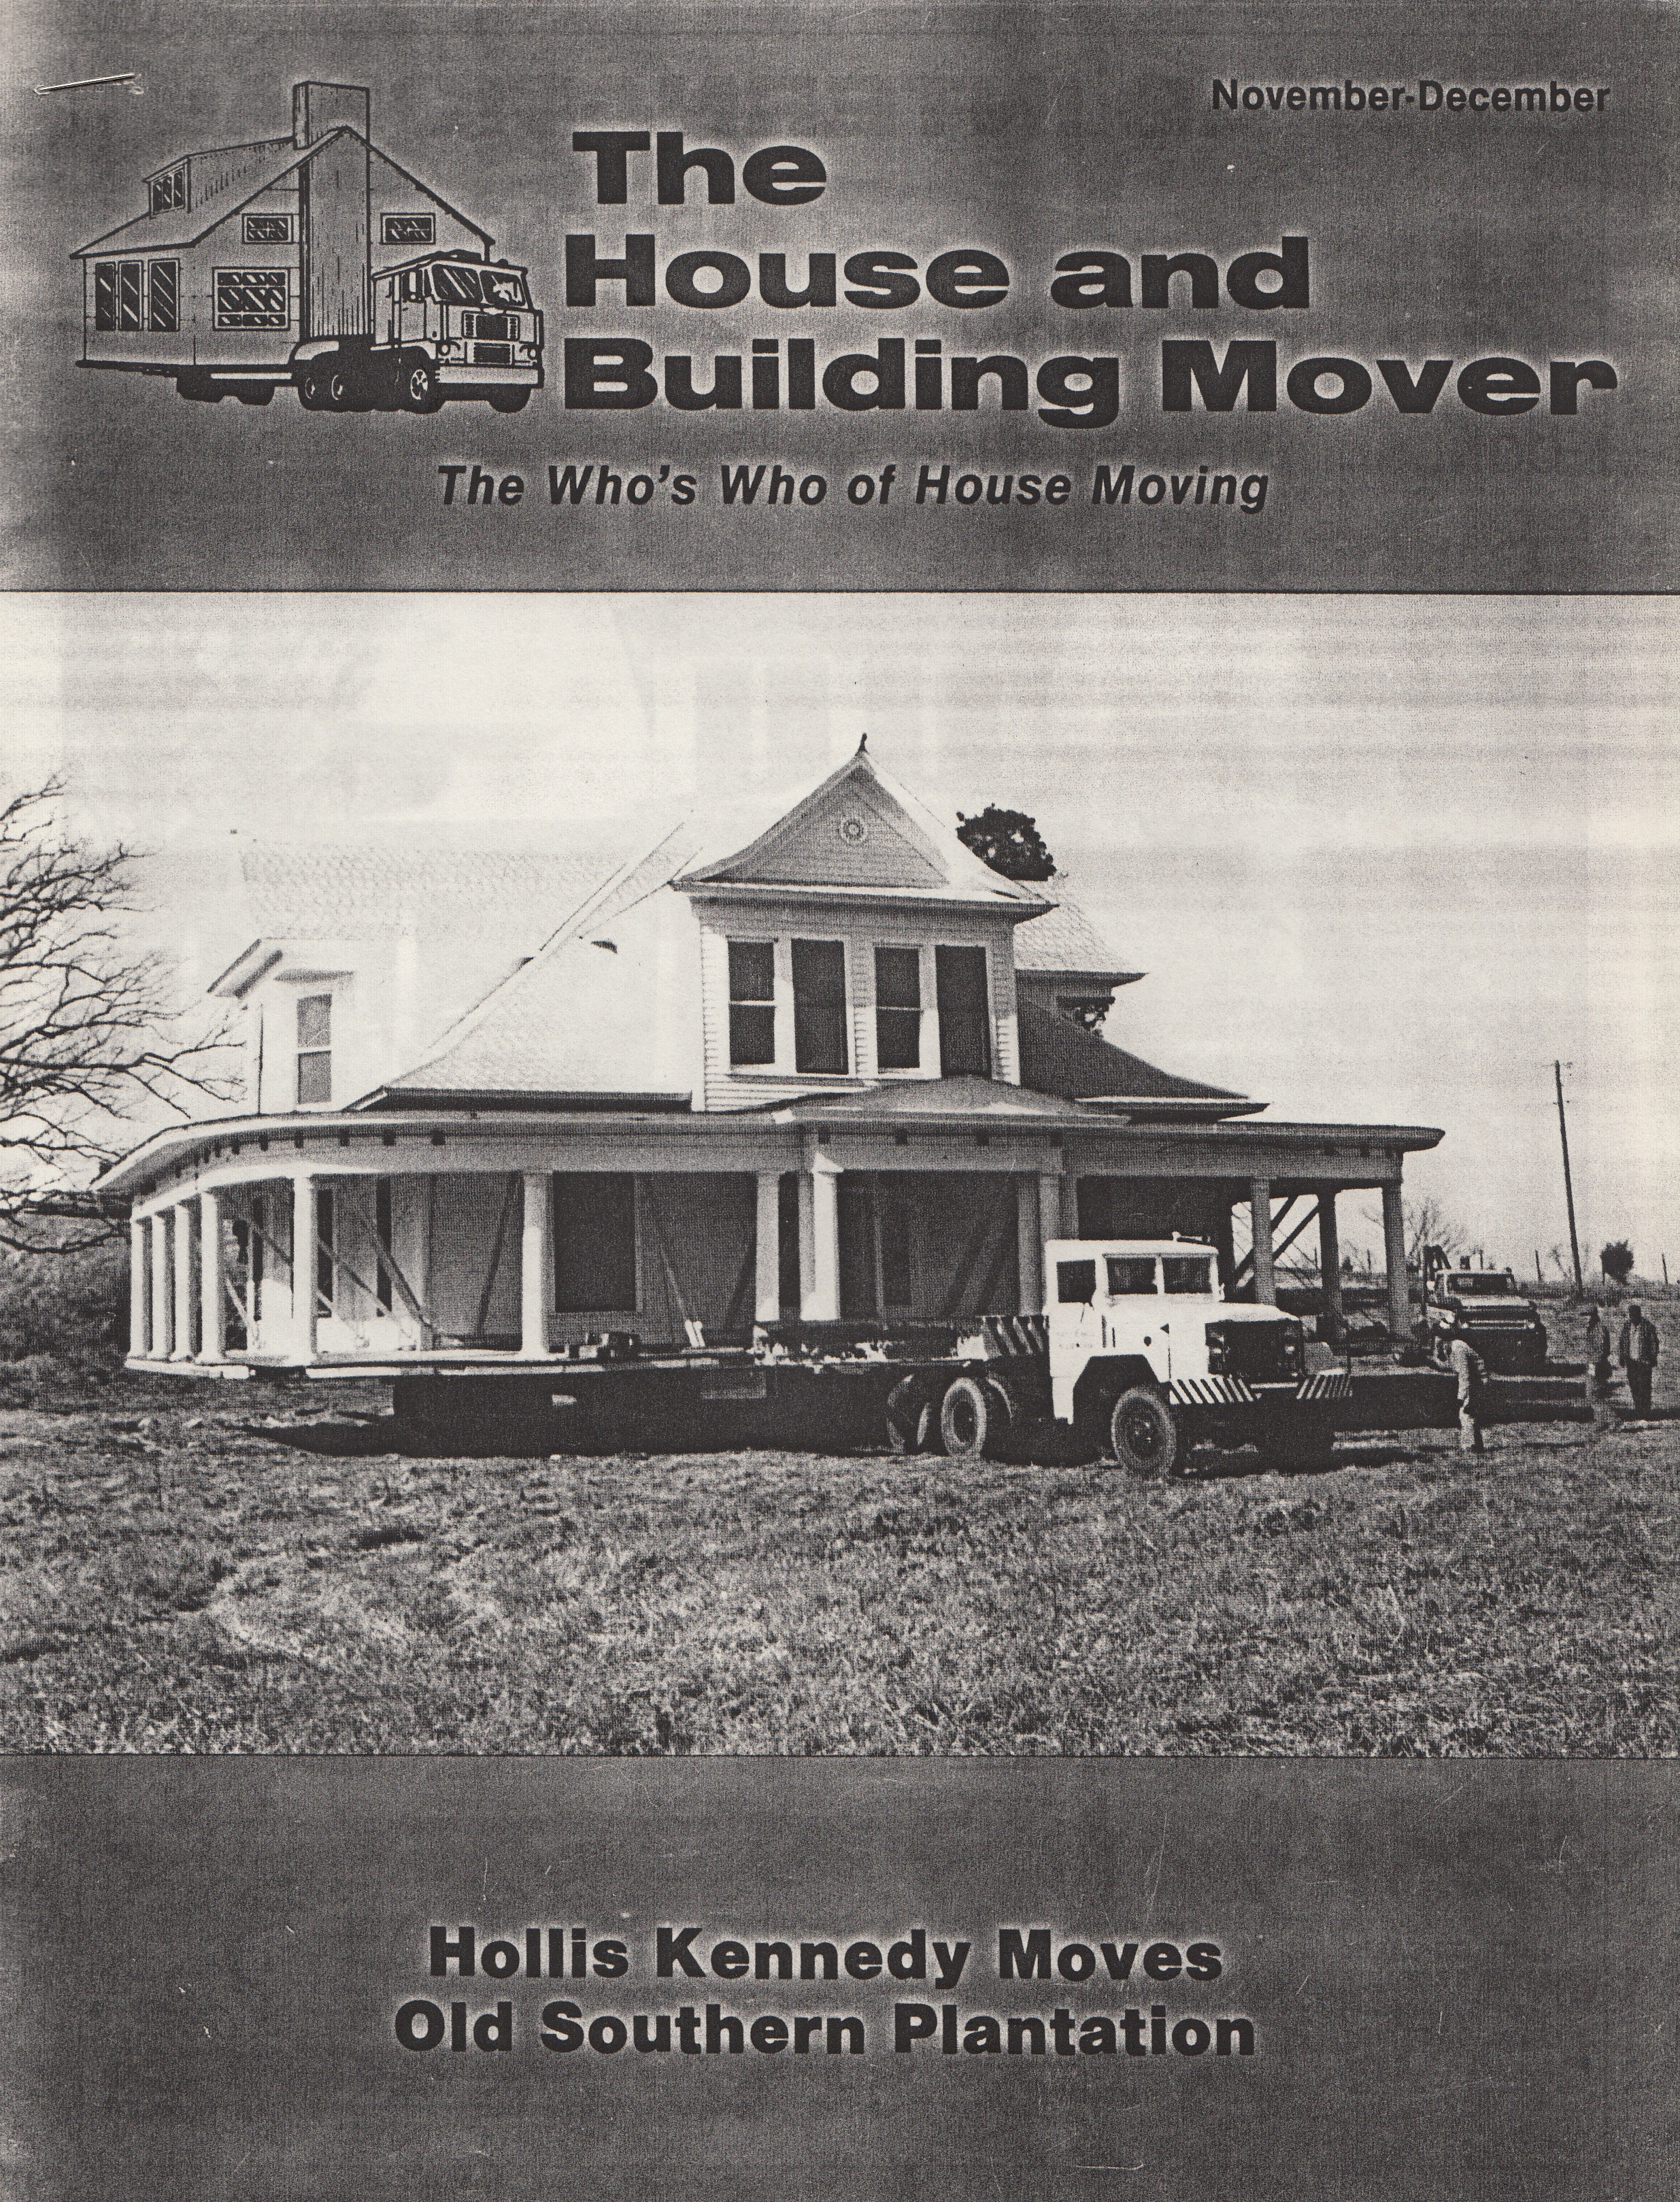 Old Southern Plantation Move